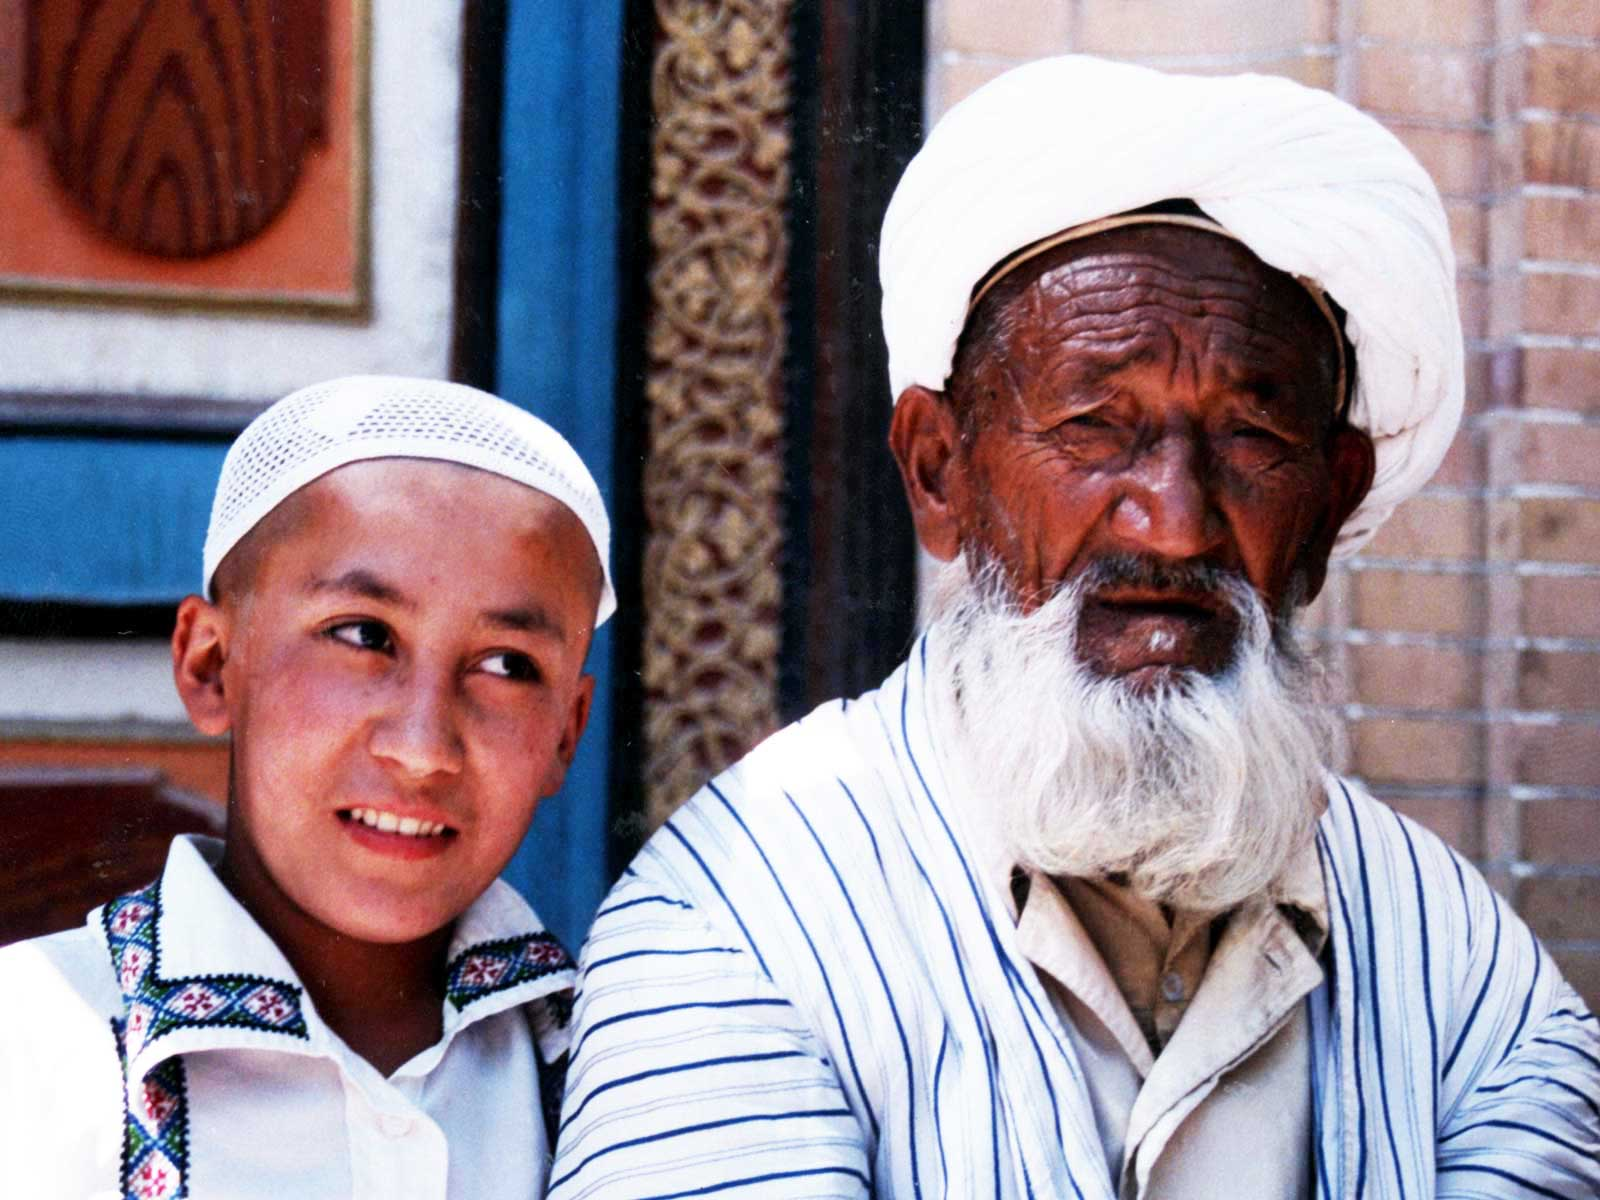 Islamic culture - Kashgar, Xinjiang, China - 1995 Silk Road Photo Journal - Dr Steven Andrew Martin - University of Hawaii Study Abroad